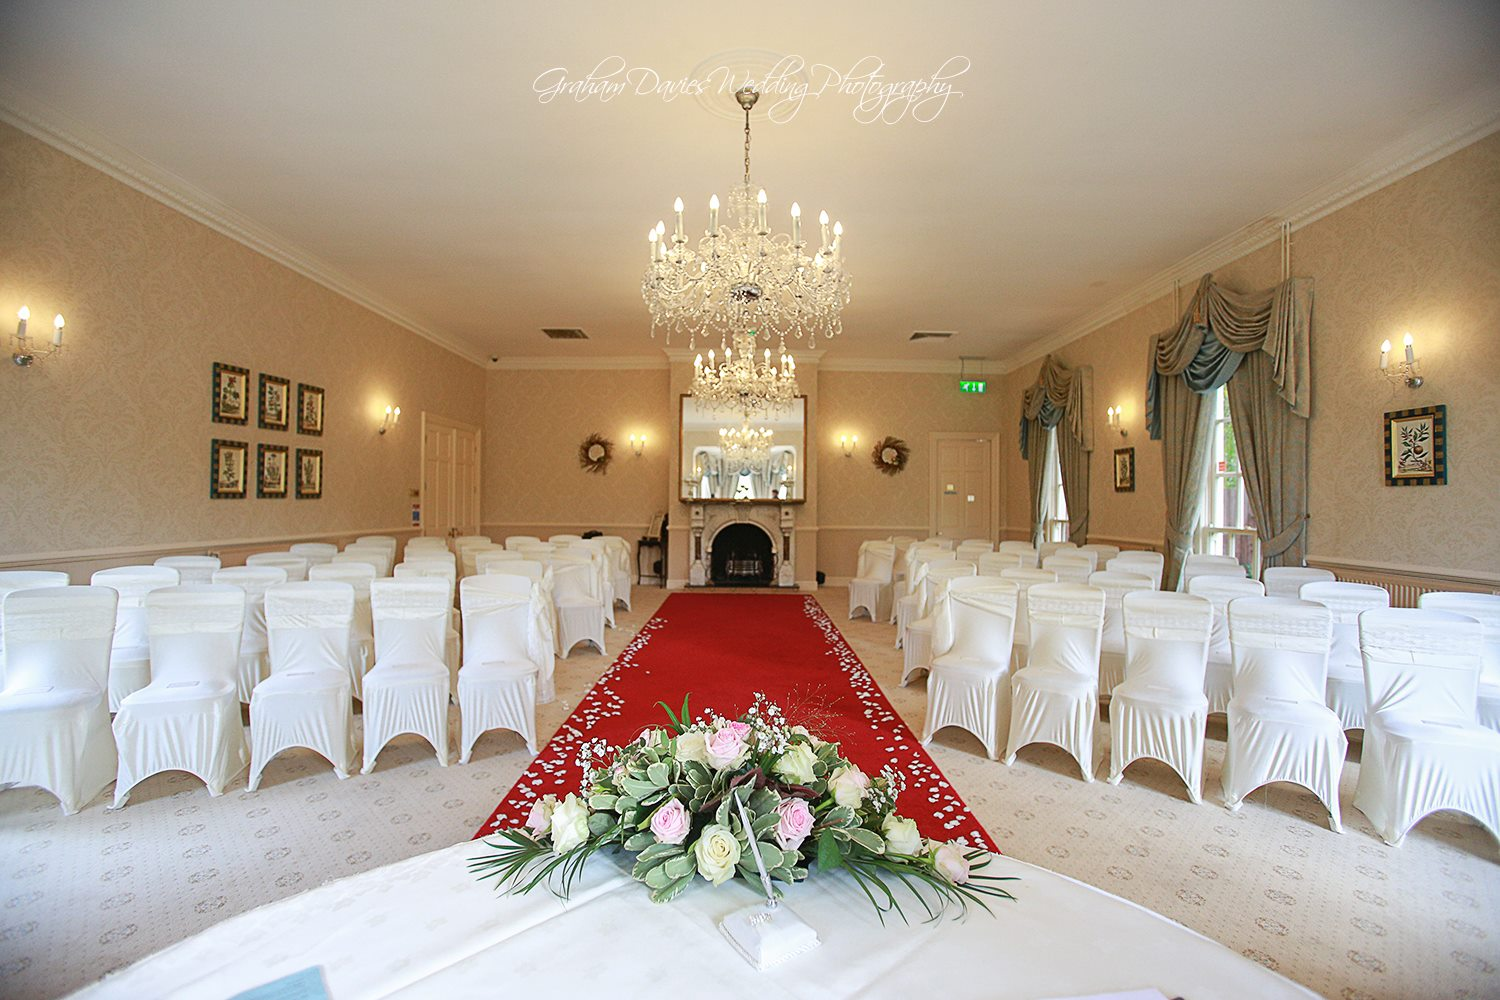 chair cover hire newport best high for babies 2018 wedding and event venue decorators in wales covers